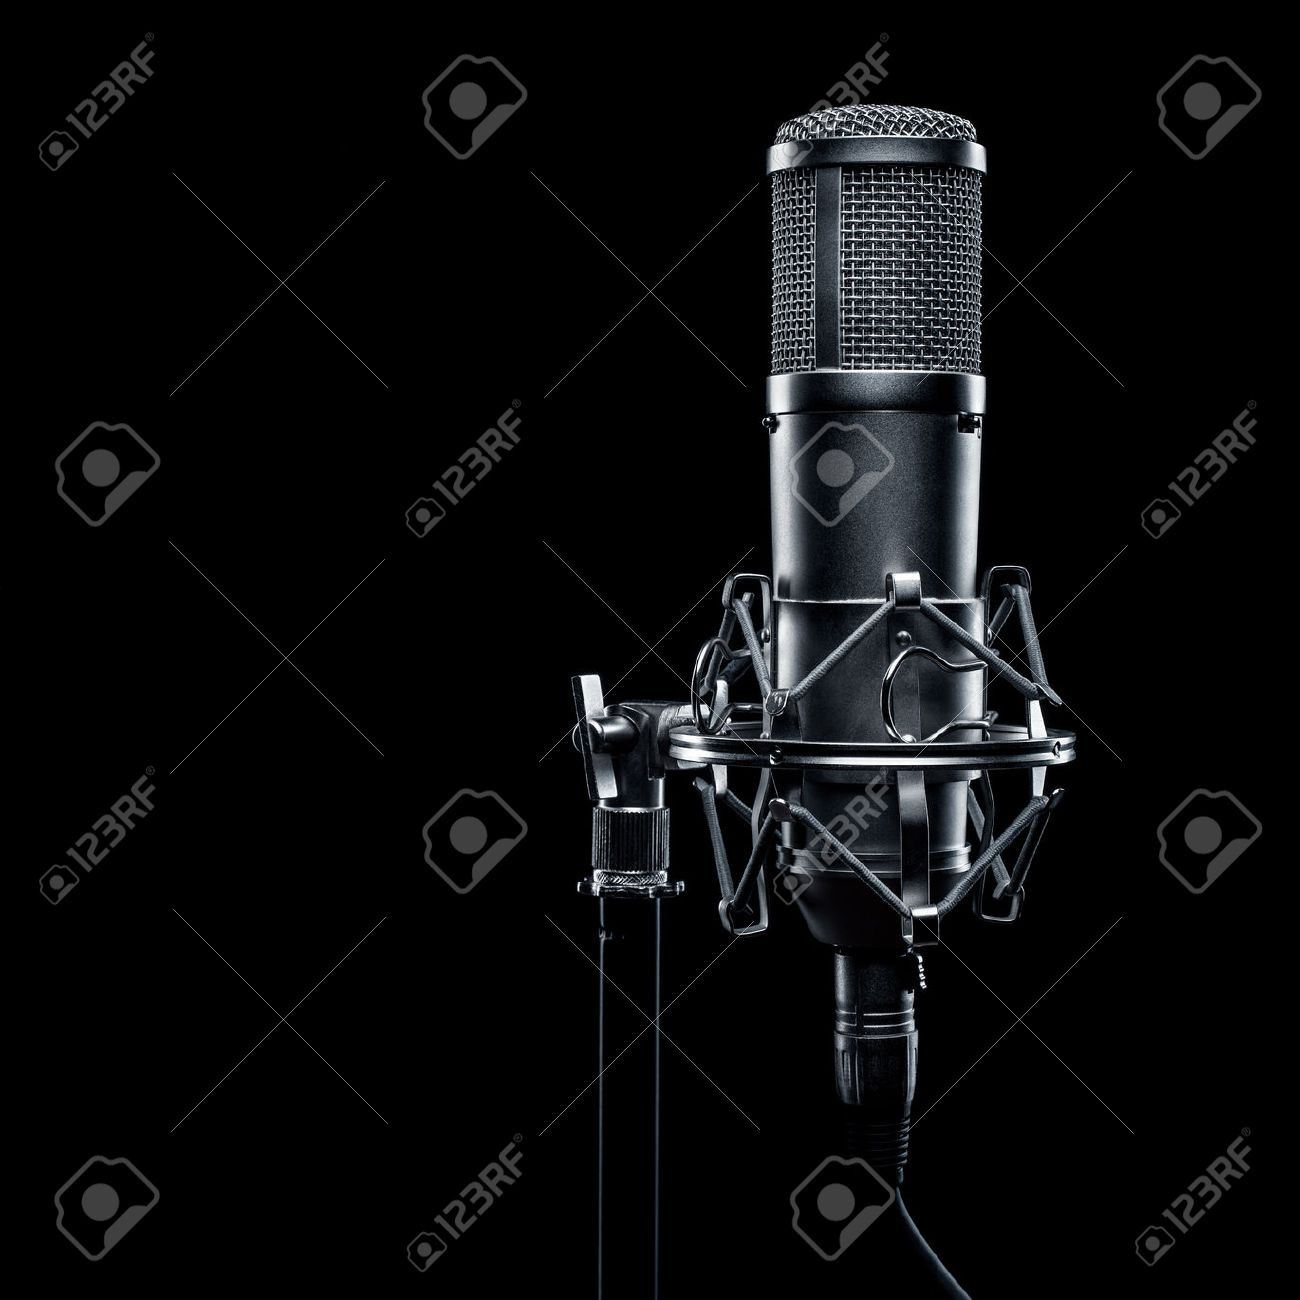 Studio Microphone On A Black Background Stock Photo Picture And Royalty Free Image Image 47169990